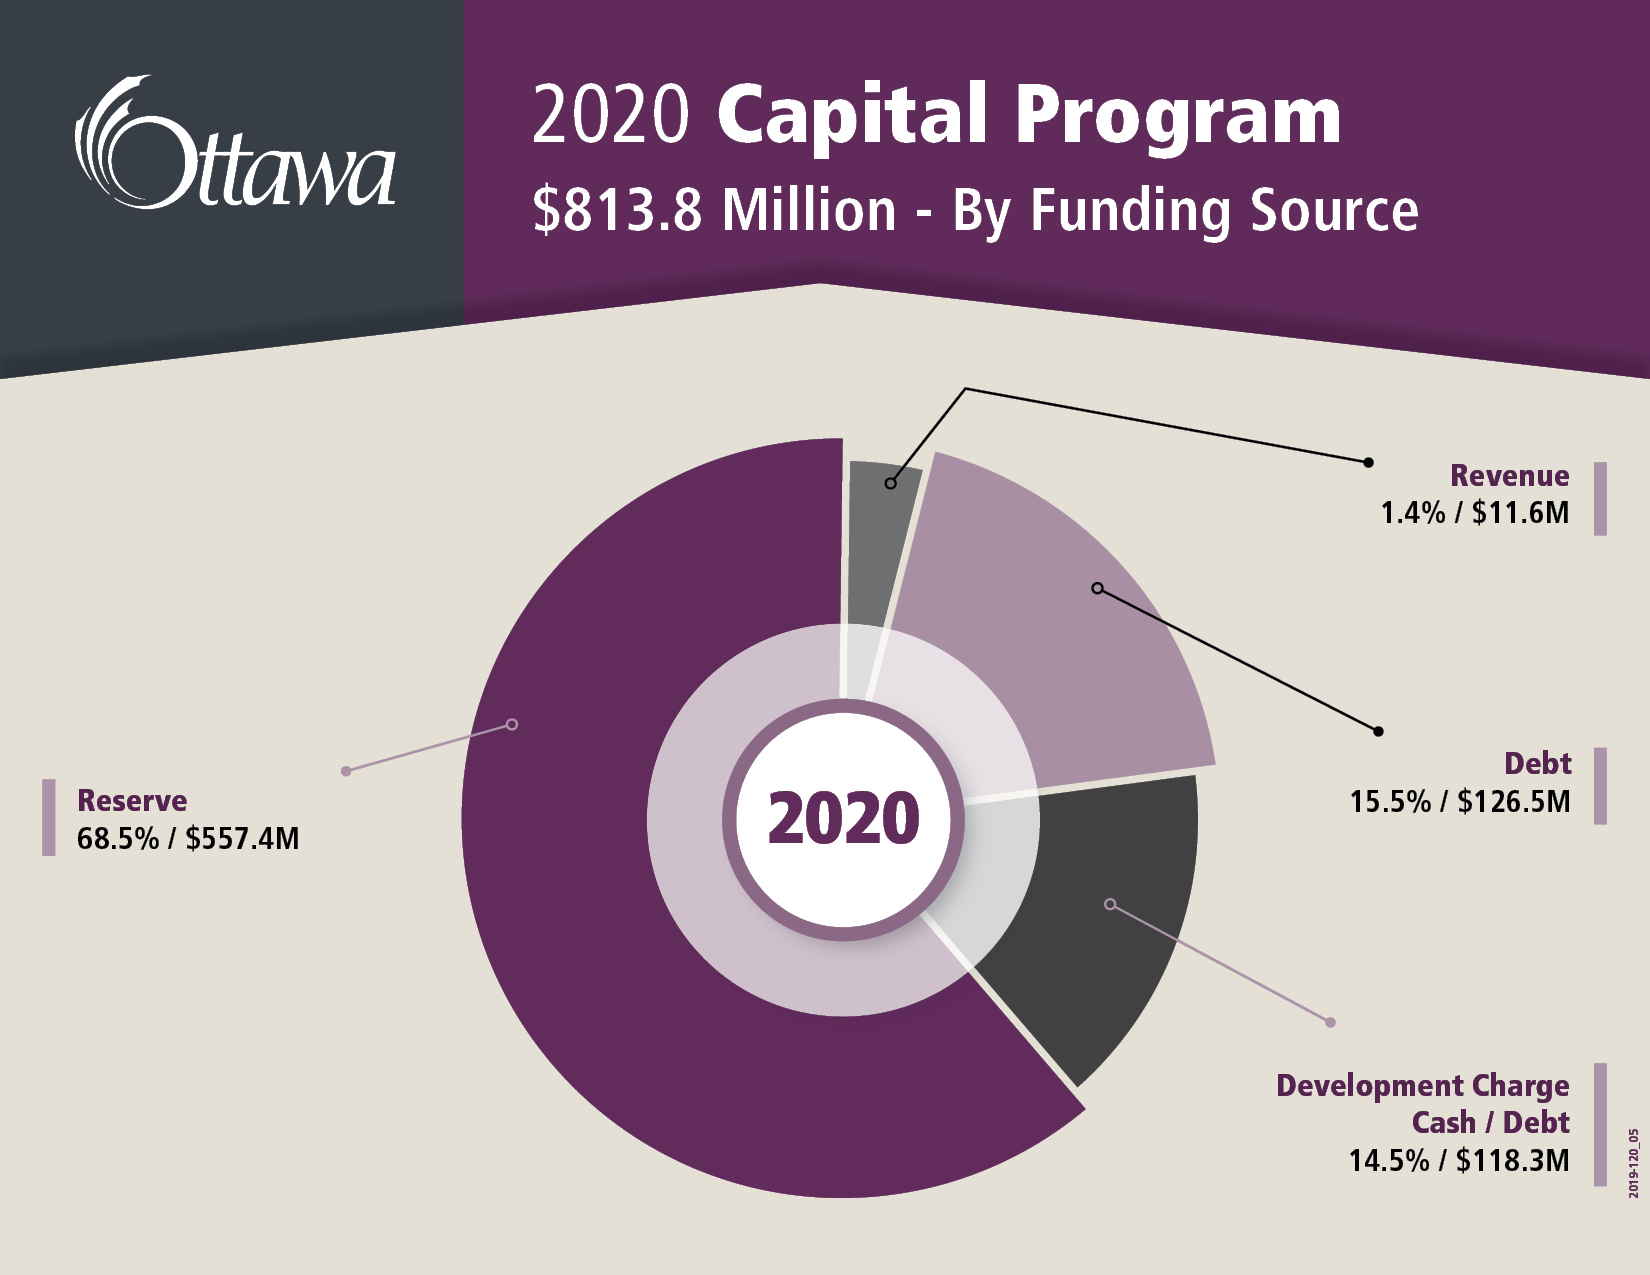 2020 Capital Program $813.8 million - By Funding Source